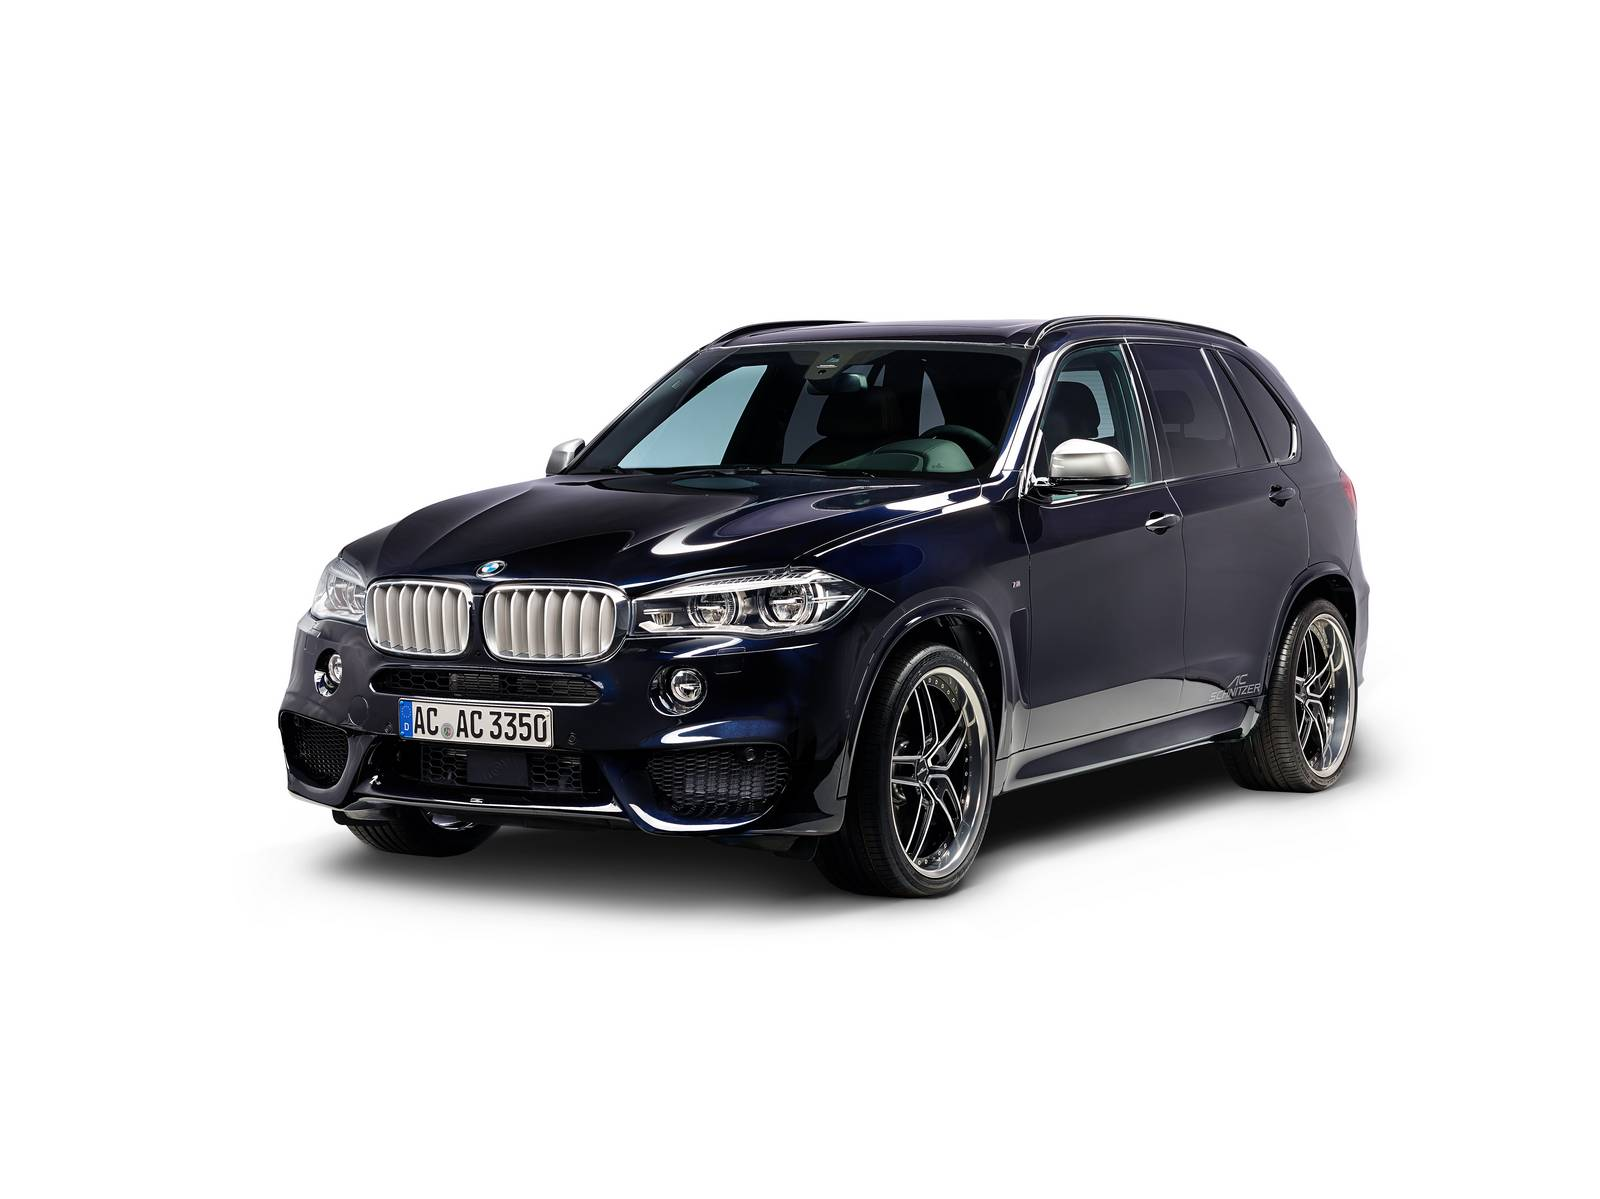 official bmw x5 m50d by ac schnitzer gtspirit. Black Bedroom Furniture Sets. Home Design Ideas